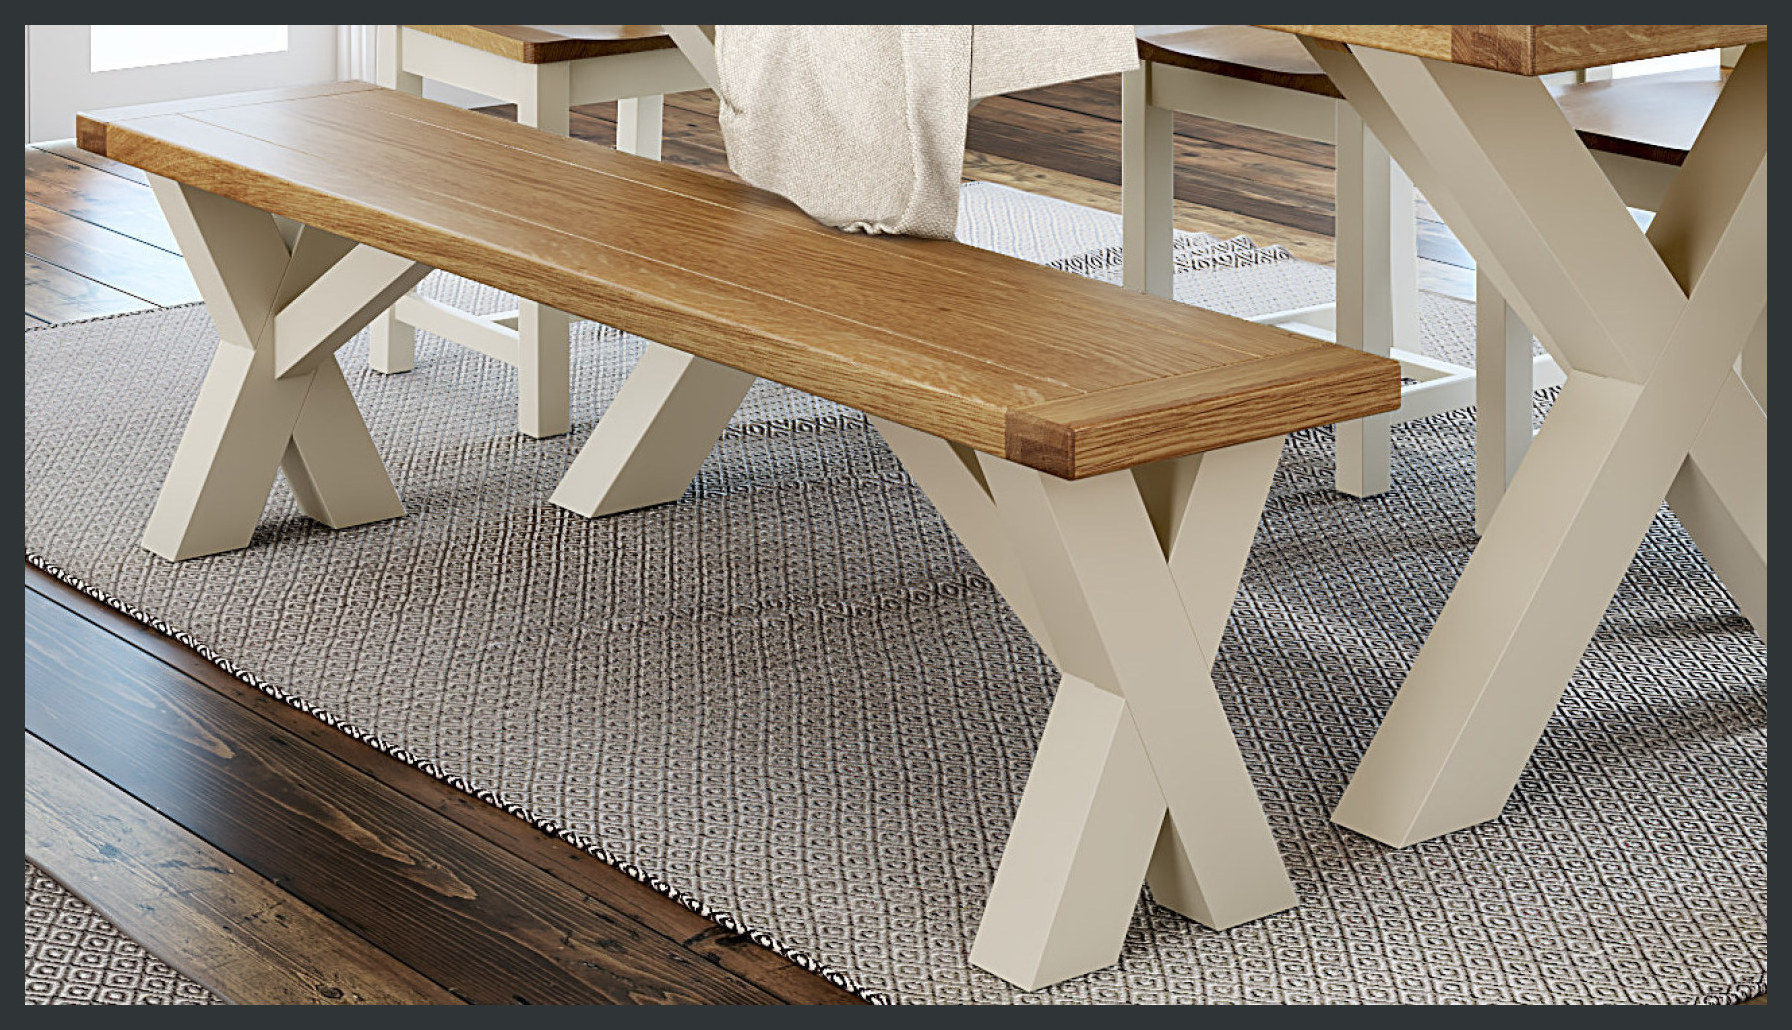 Rustique Home Florence Painted and Natural 100% Solid Oak cross legged bench. Two colors, legs are painted grey and the seat is natural oak color.